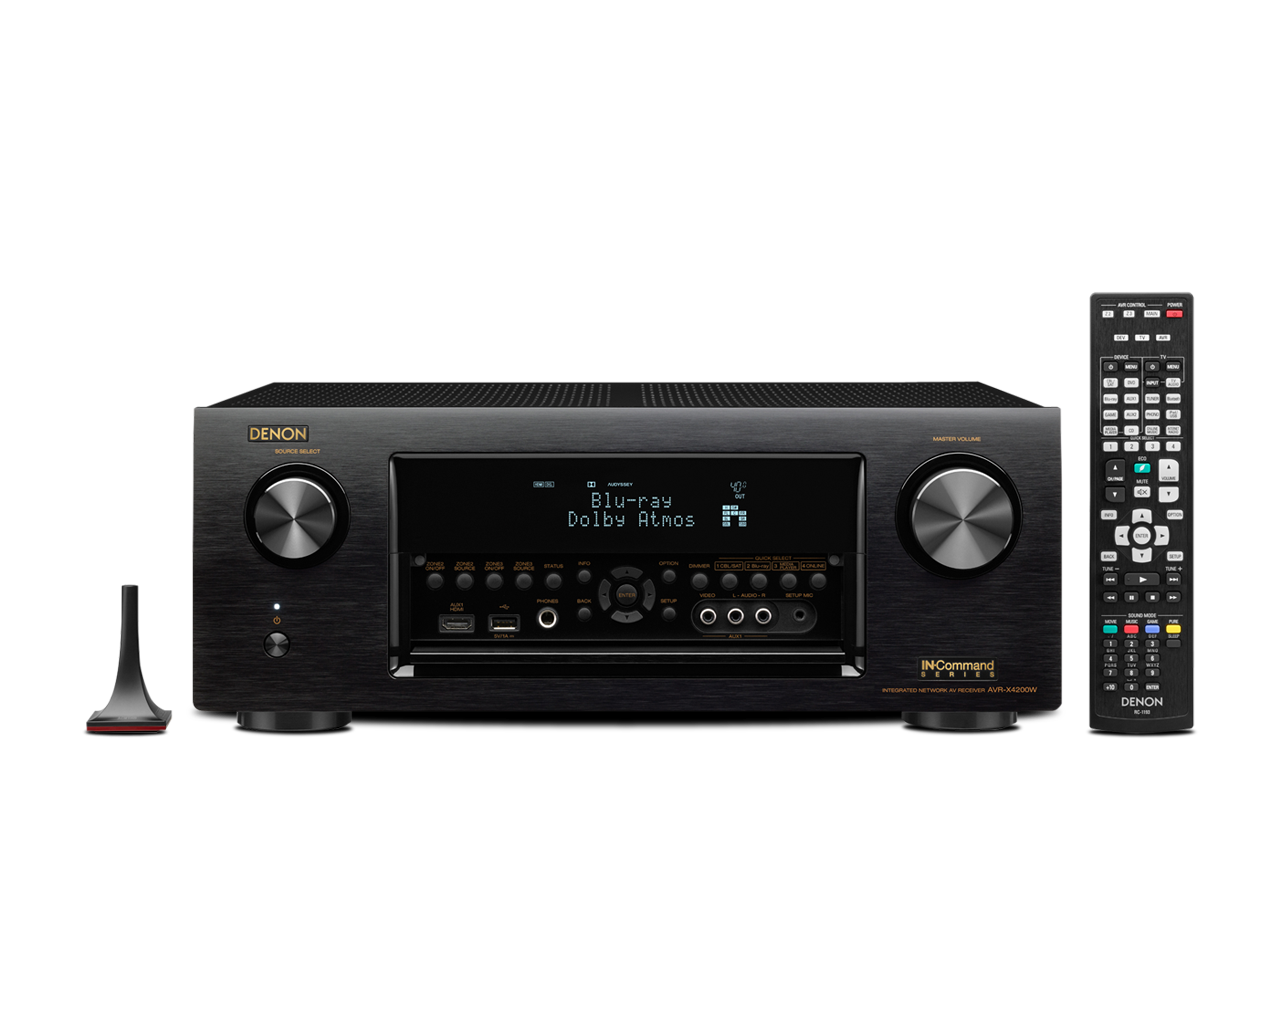 Denon AVR-X4200W 7.2 Channel Full 4K Ultra HD A/V Receiver with